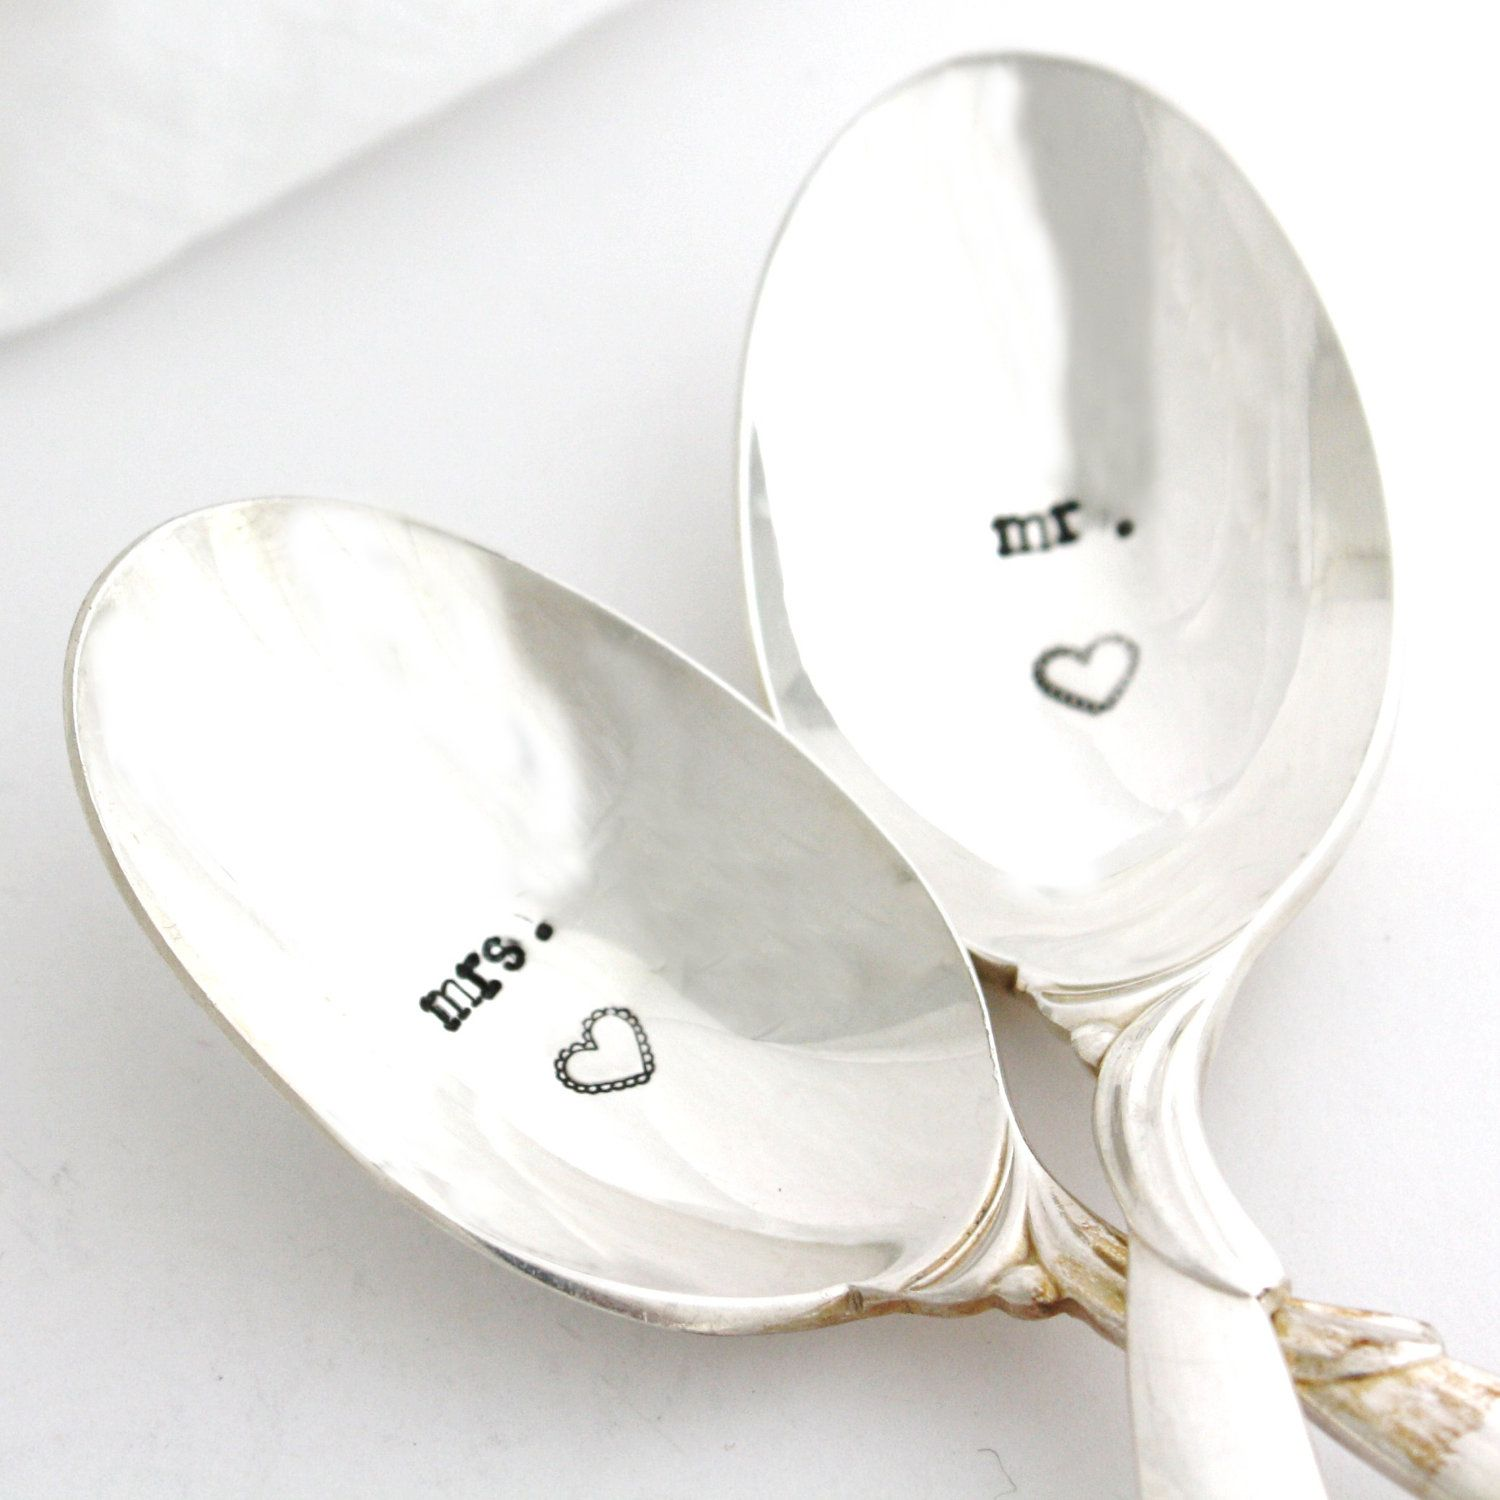 Mr. and Mrs. hand stamped silverware.